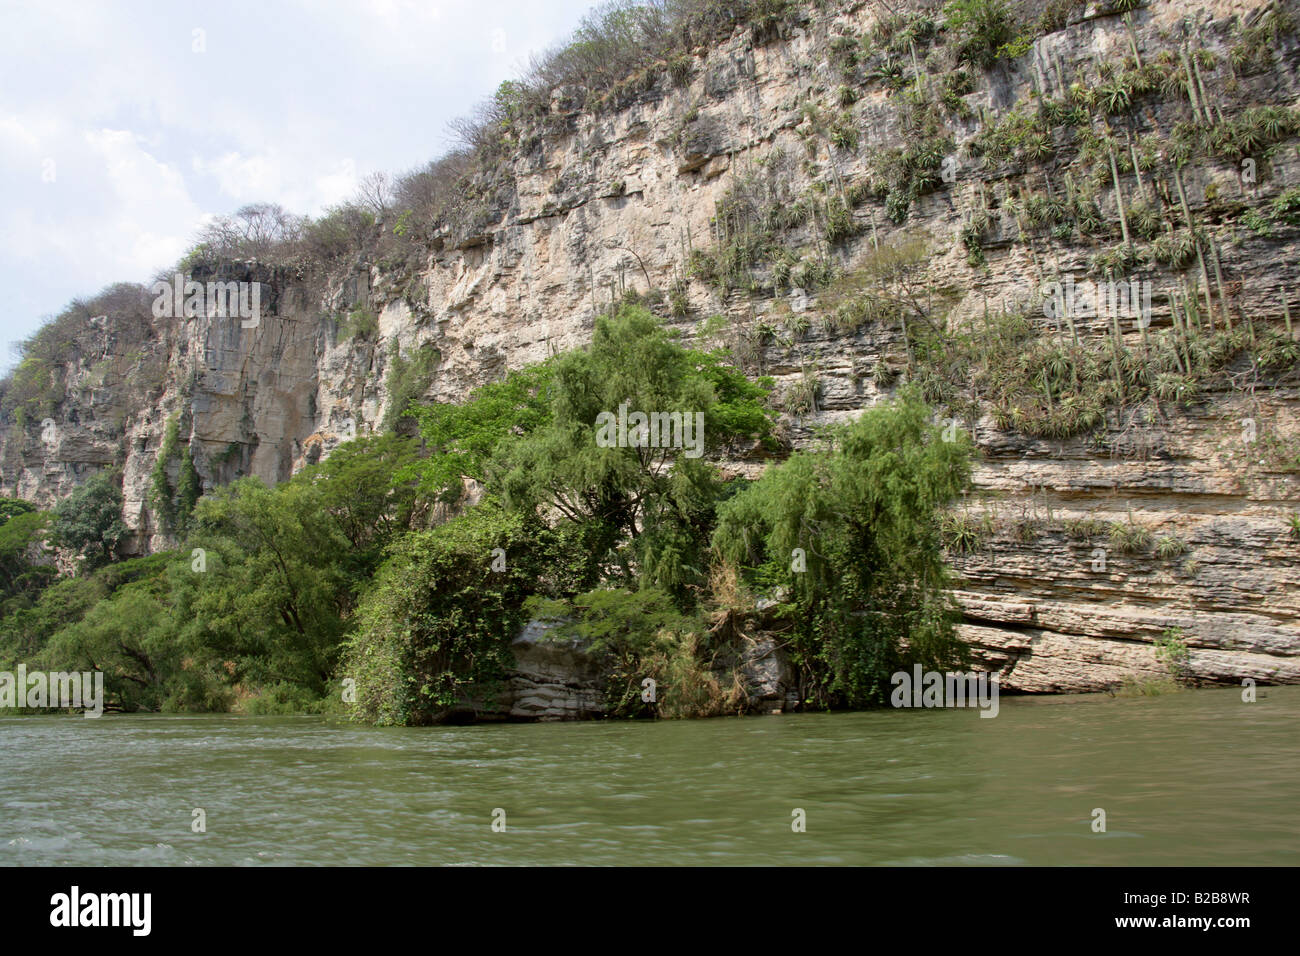 Sumidero Canyon and Grijalva River, Chiapas State, Mexico Stock Photo